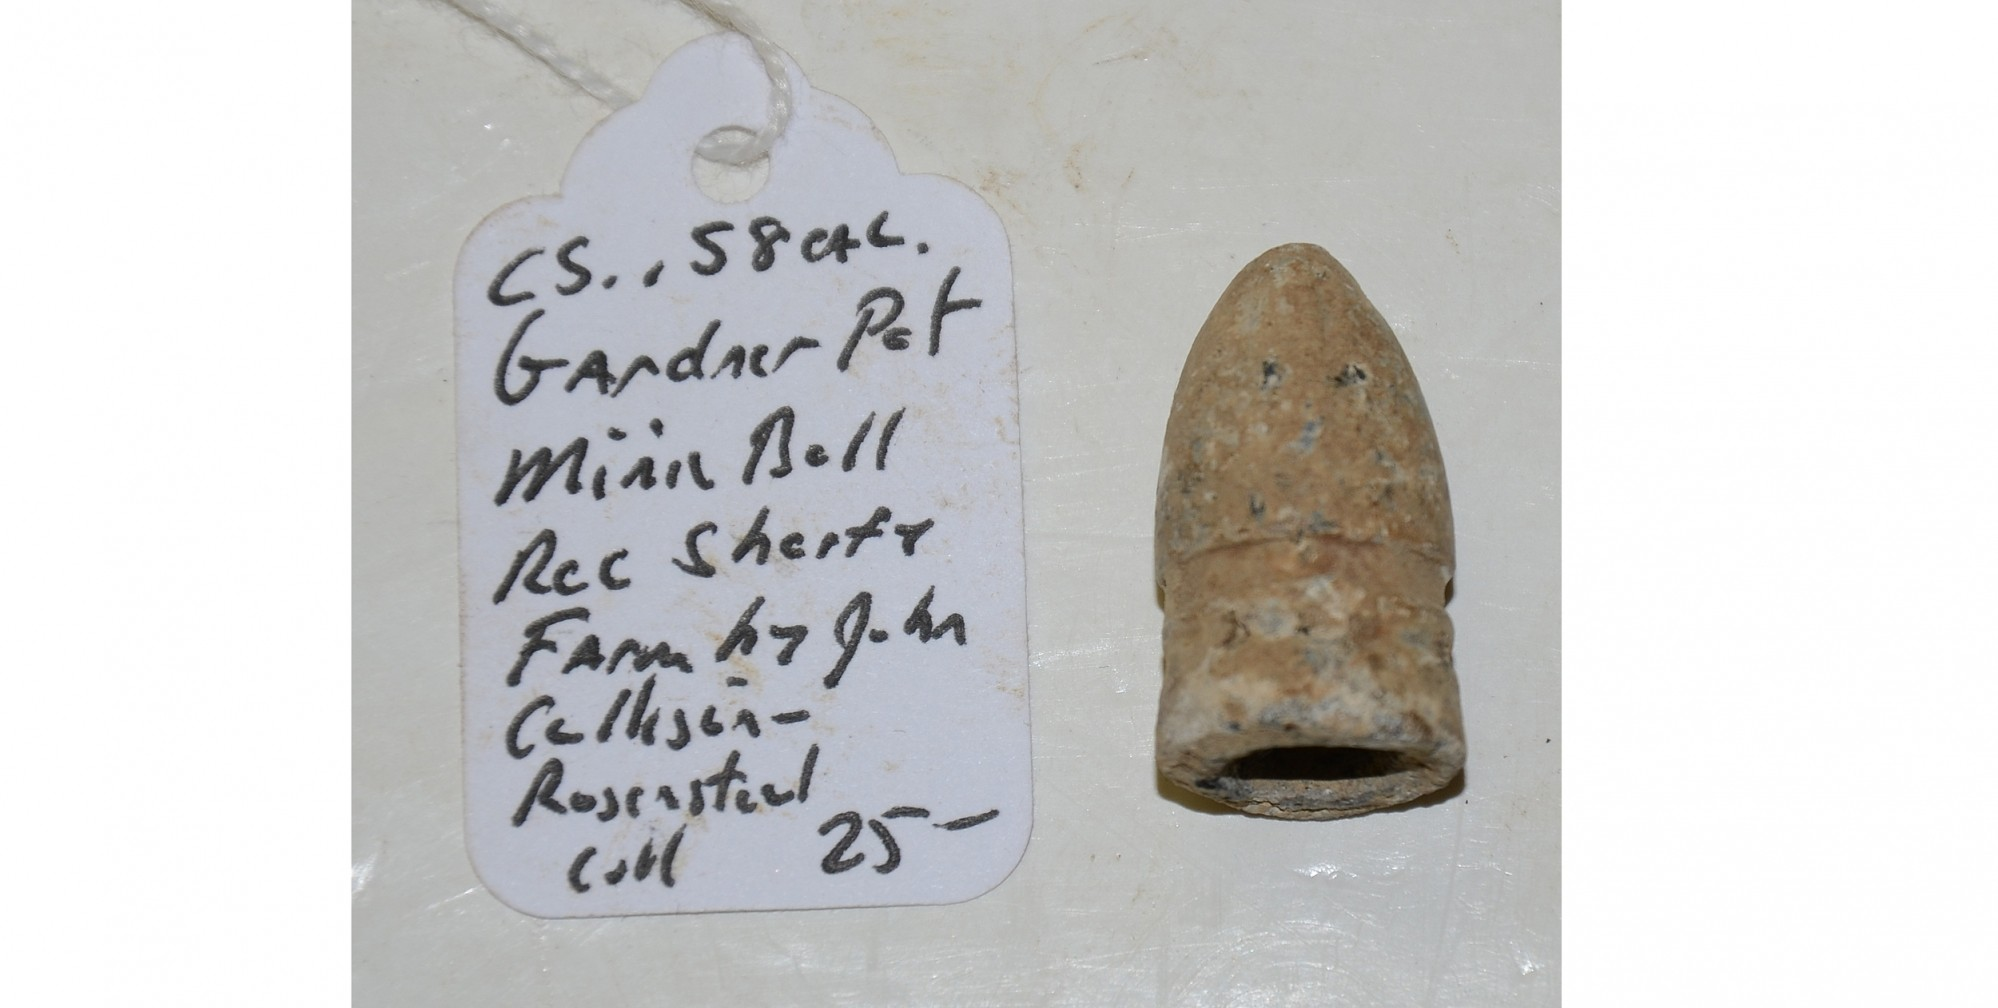 CS .58 CAL. GARDNER PATENT MINIE BALL RECOVERED ON THE SHERFY FARM, GETTYSBURG